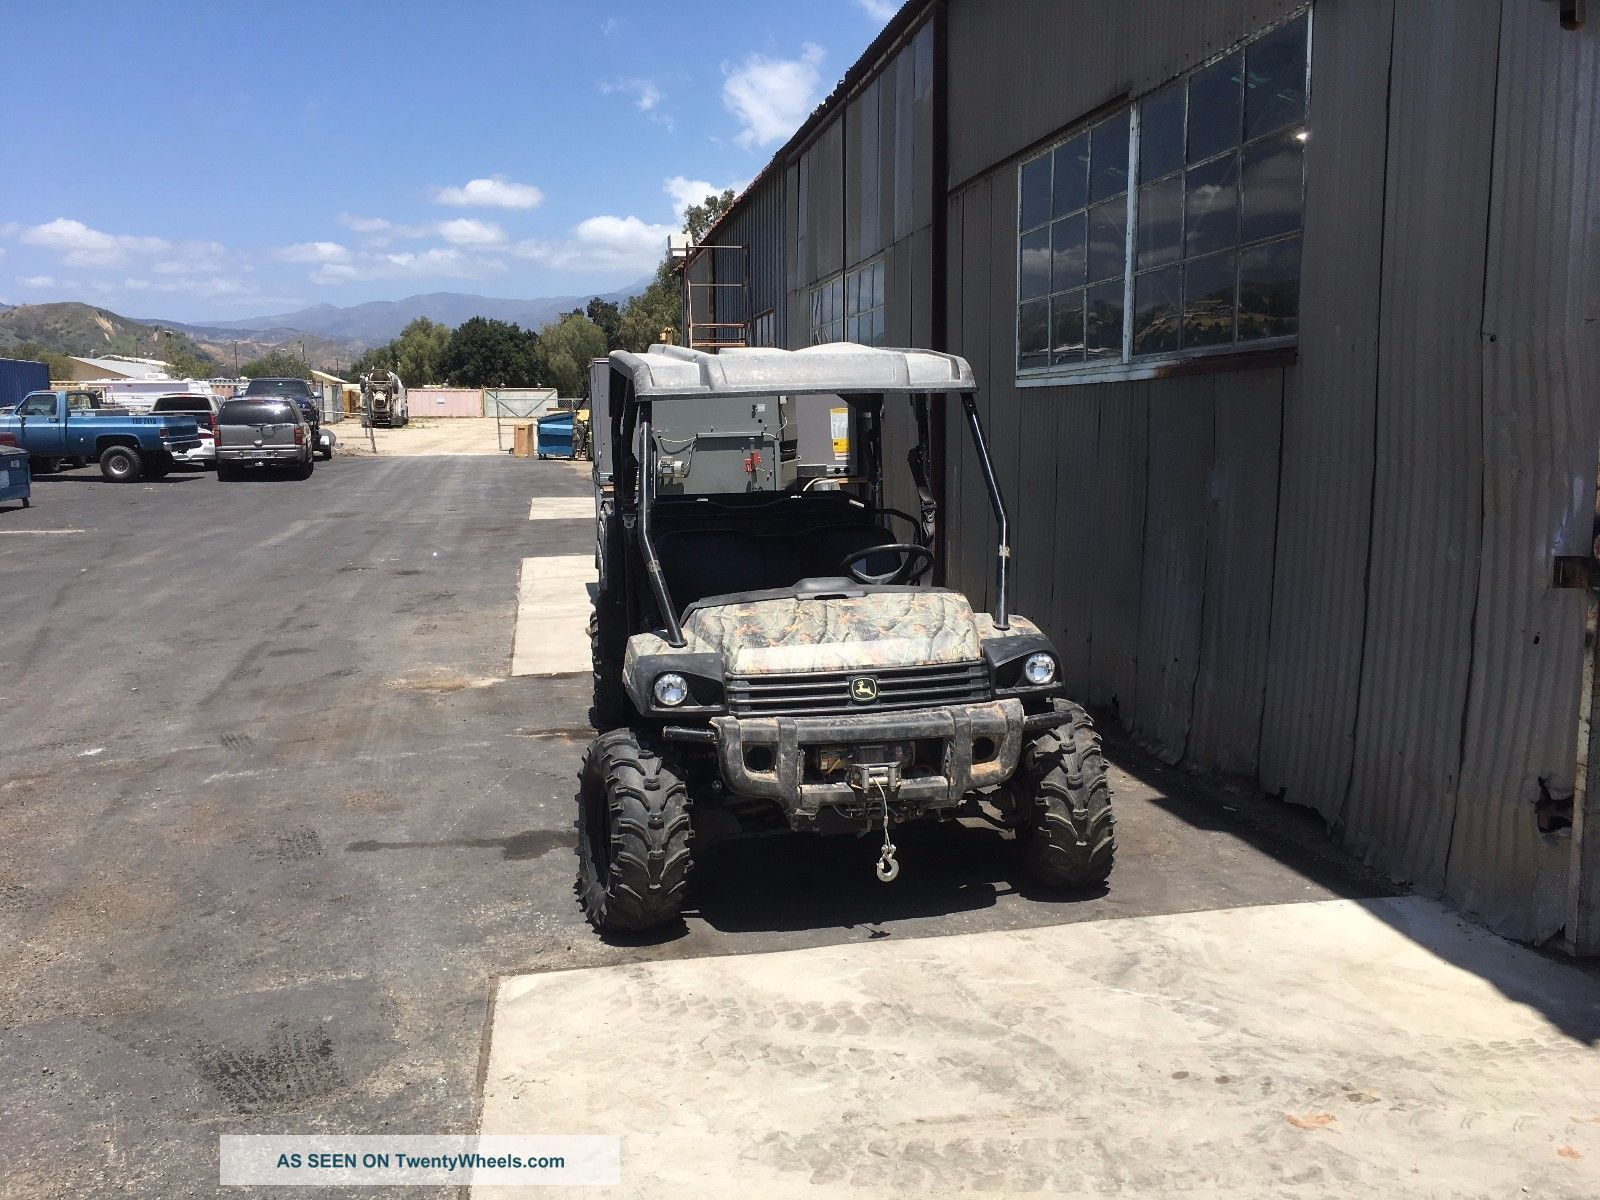 2013 John Deere 825i S4 Gator.  4 Seater.  4x4.  Power Steering.  Real Tree Camo Utility Vehicles photo